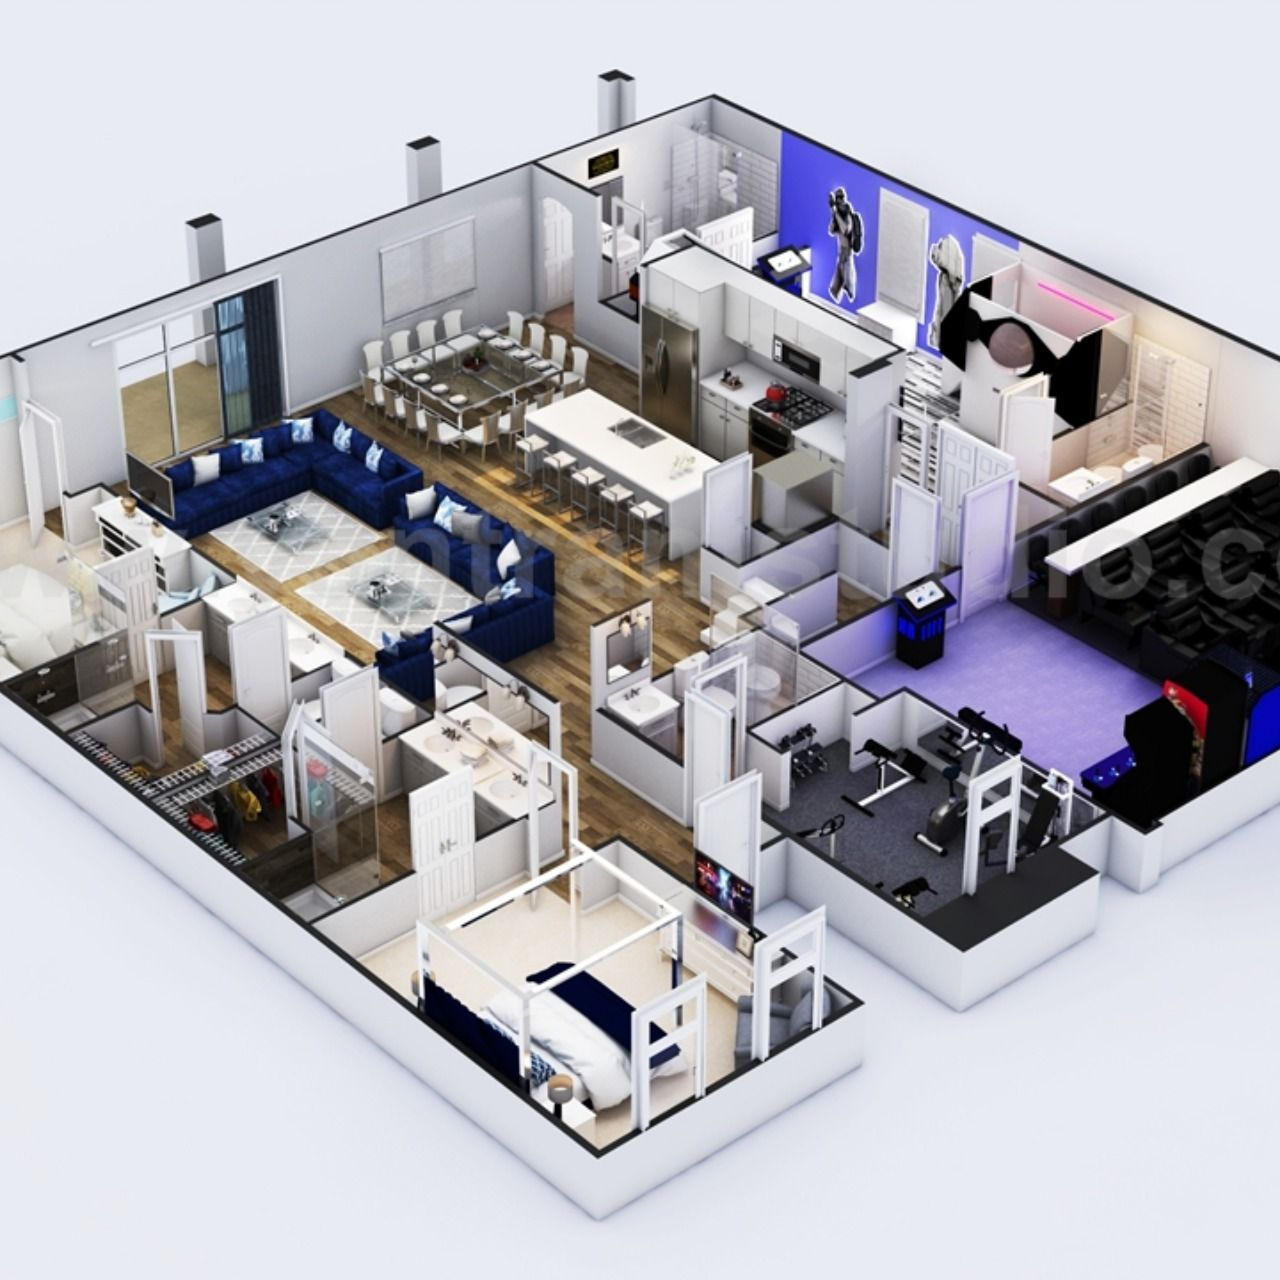 Multi Bedroom Residential 3d Home Floor Plan Design With Theater Kids Room And Game Zone Ideas Floor Plan Design House Floor Plans Mansion Floor Plan